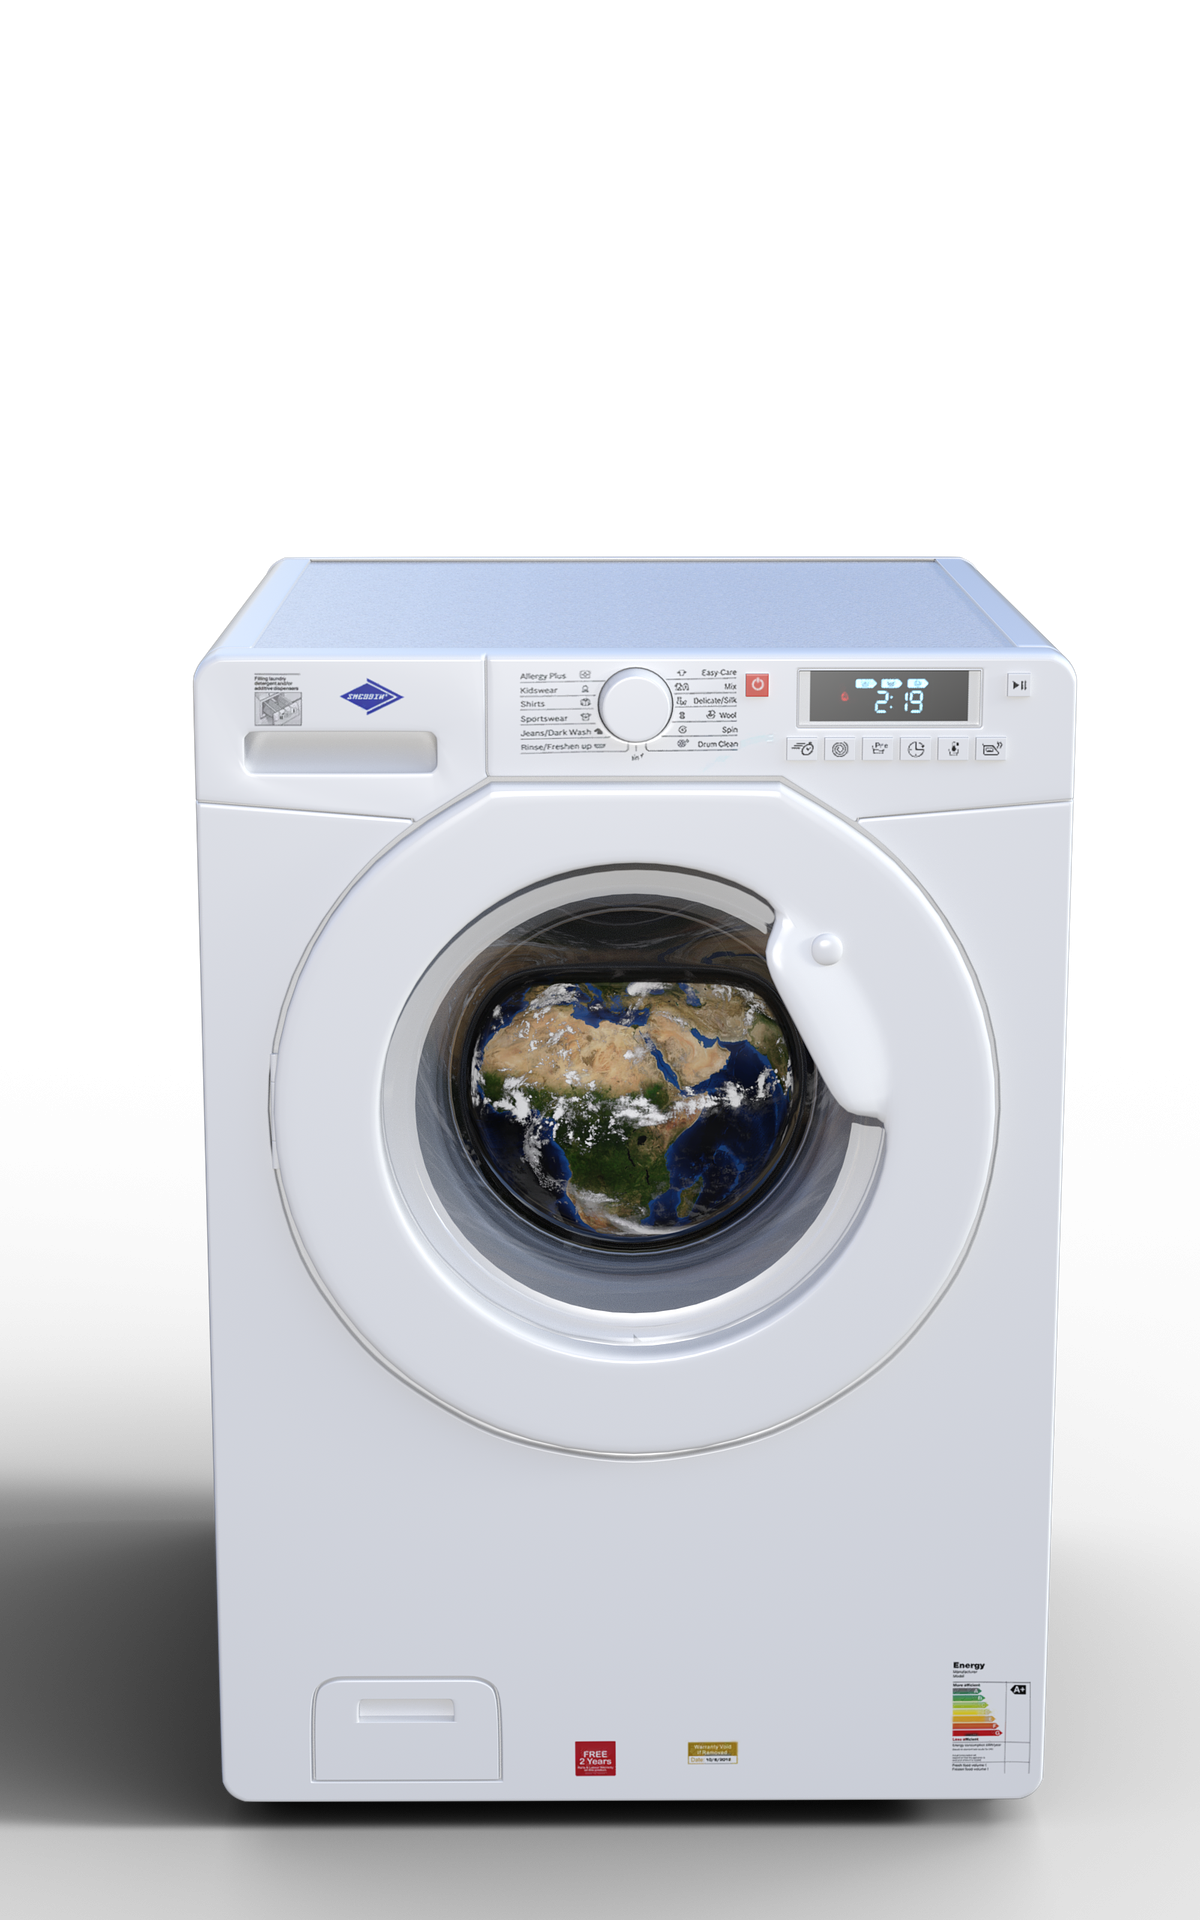 Washing machine 1786385 1920